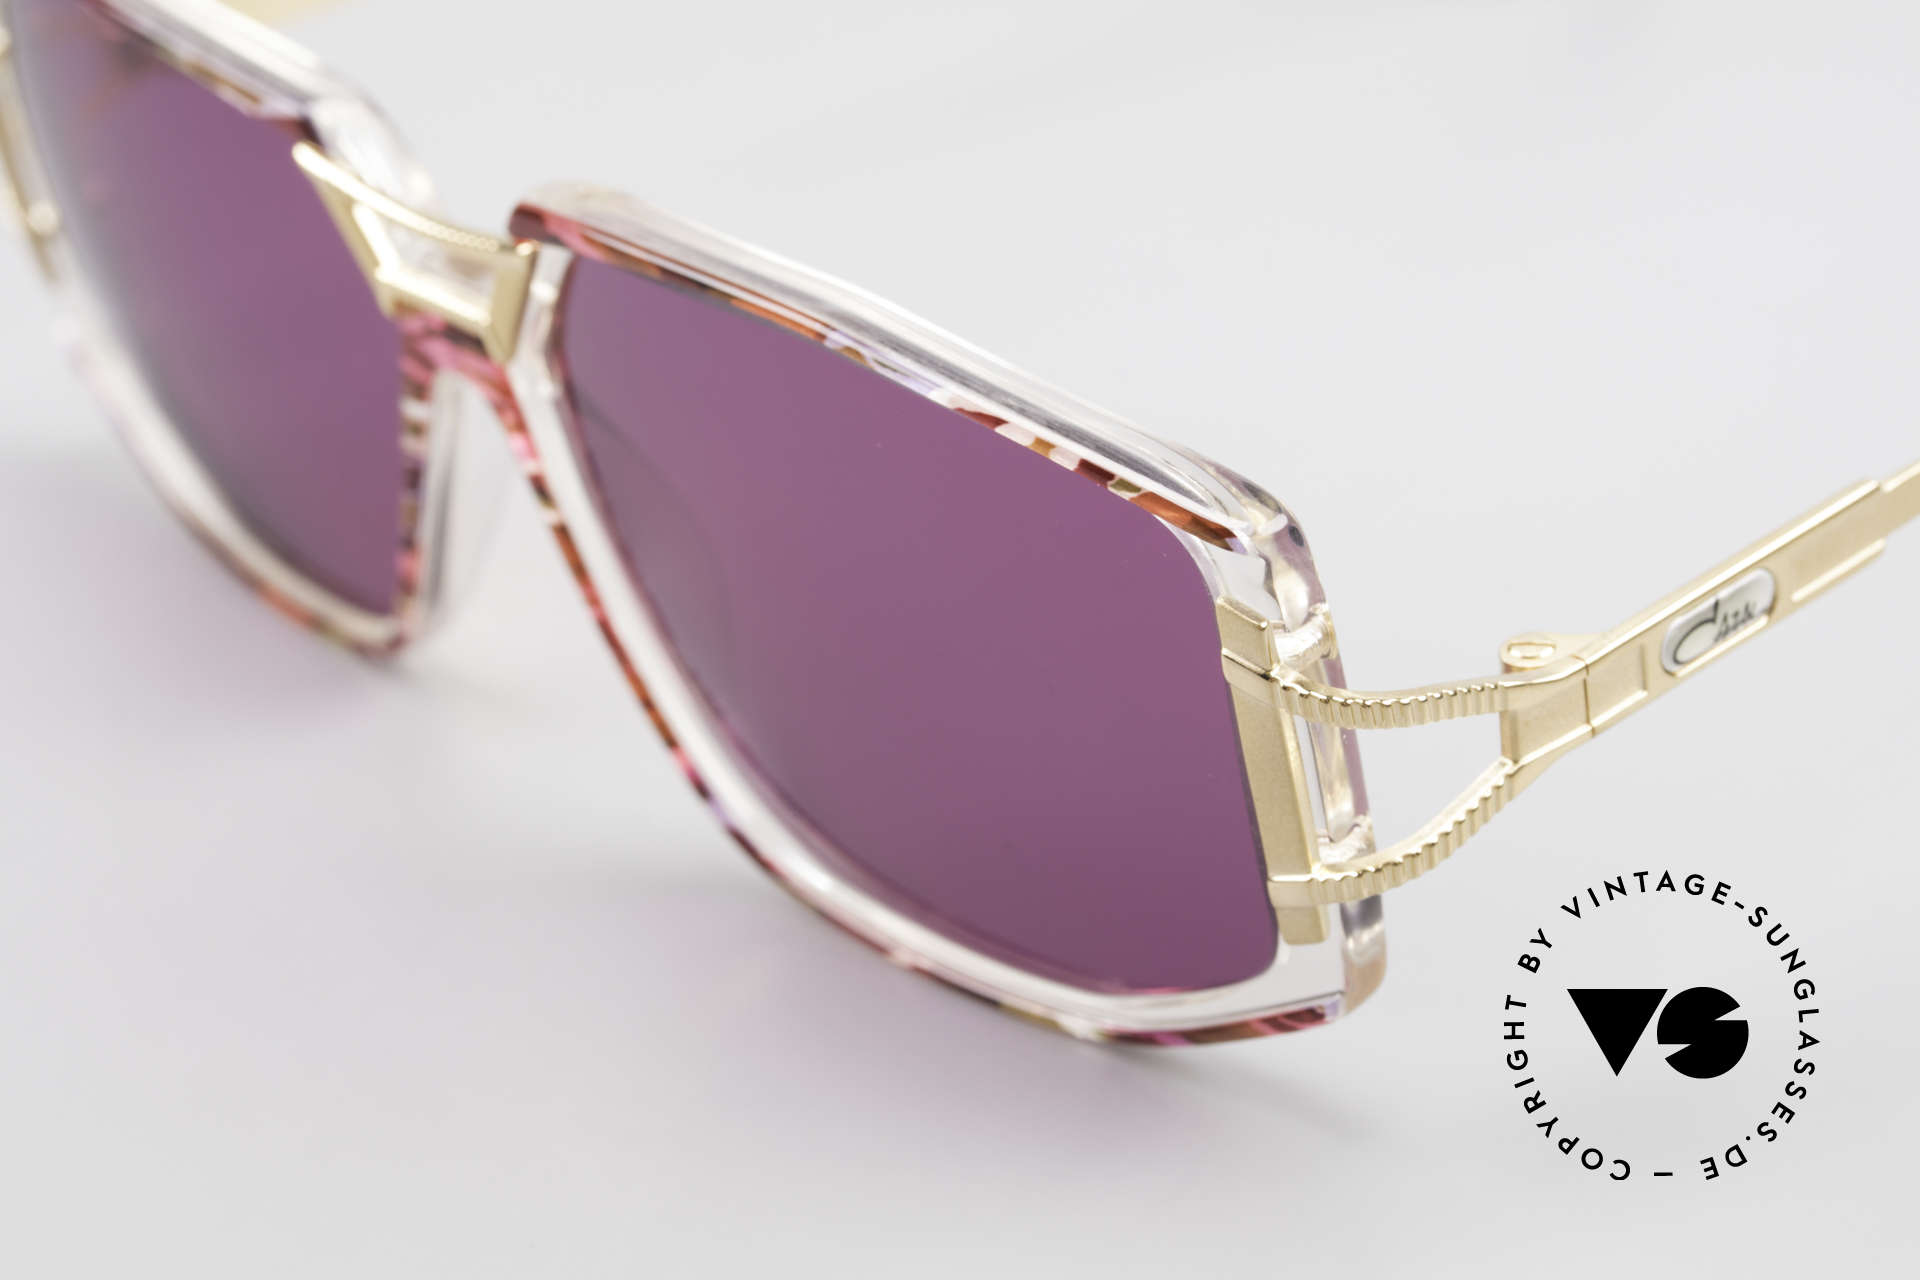 Cazal 362 90's Sunglasses Ladies Cazal, CAZAL color description: fuchsia-pink / crystal / gold, Made for Women